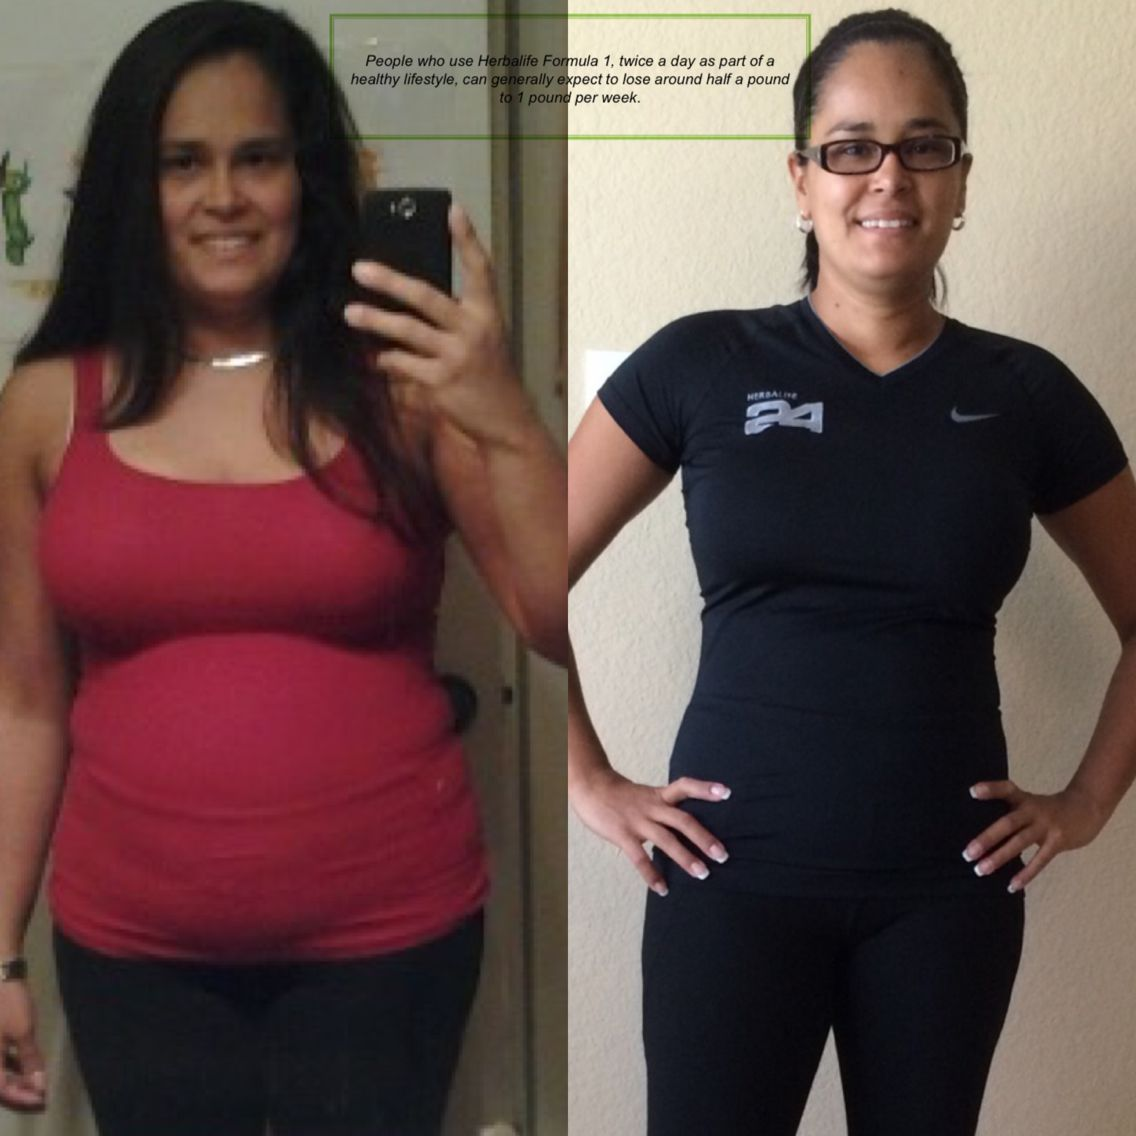 herbalife weight loss results 2016